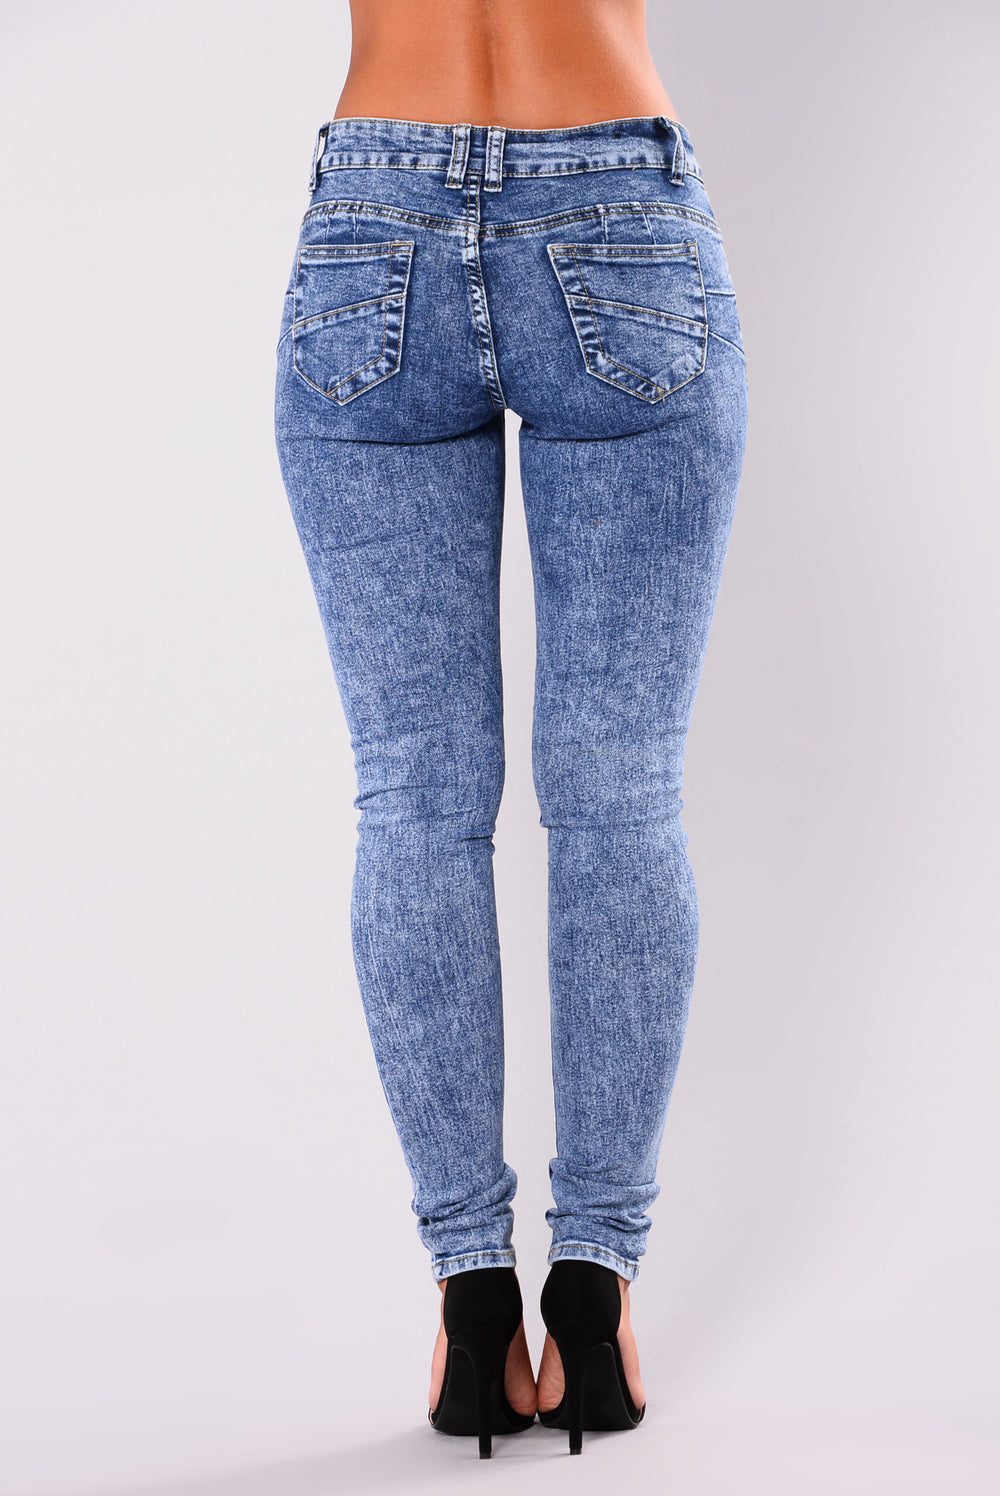 Who Booty Is It Booty Sculpting Jeans - Acid Wash